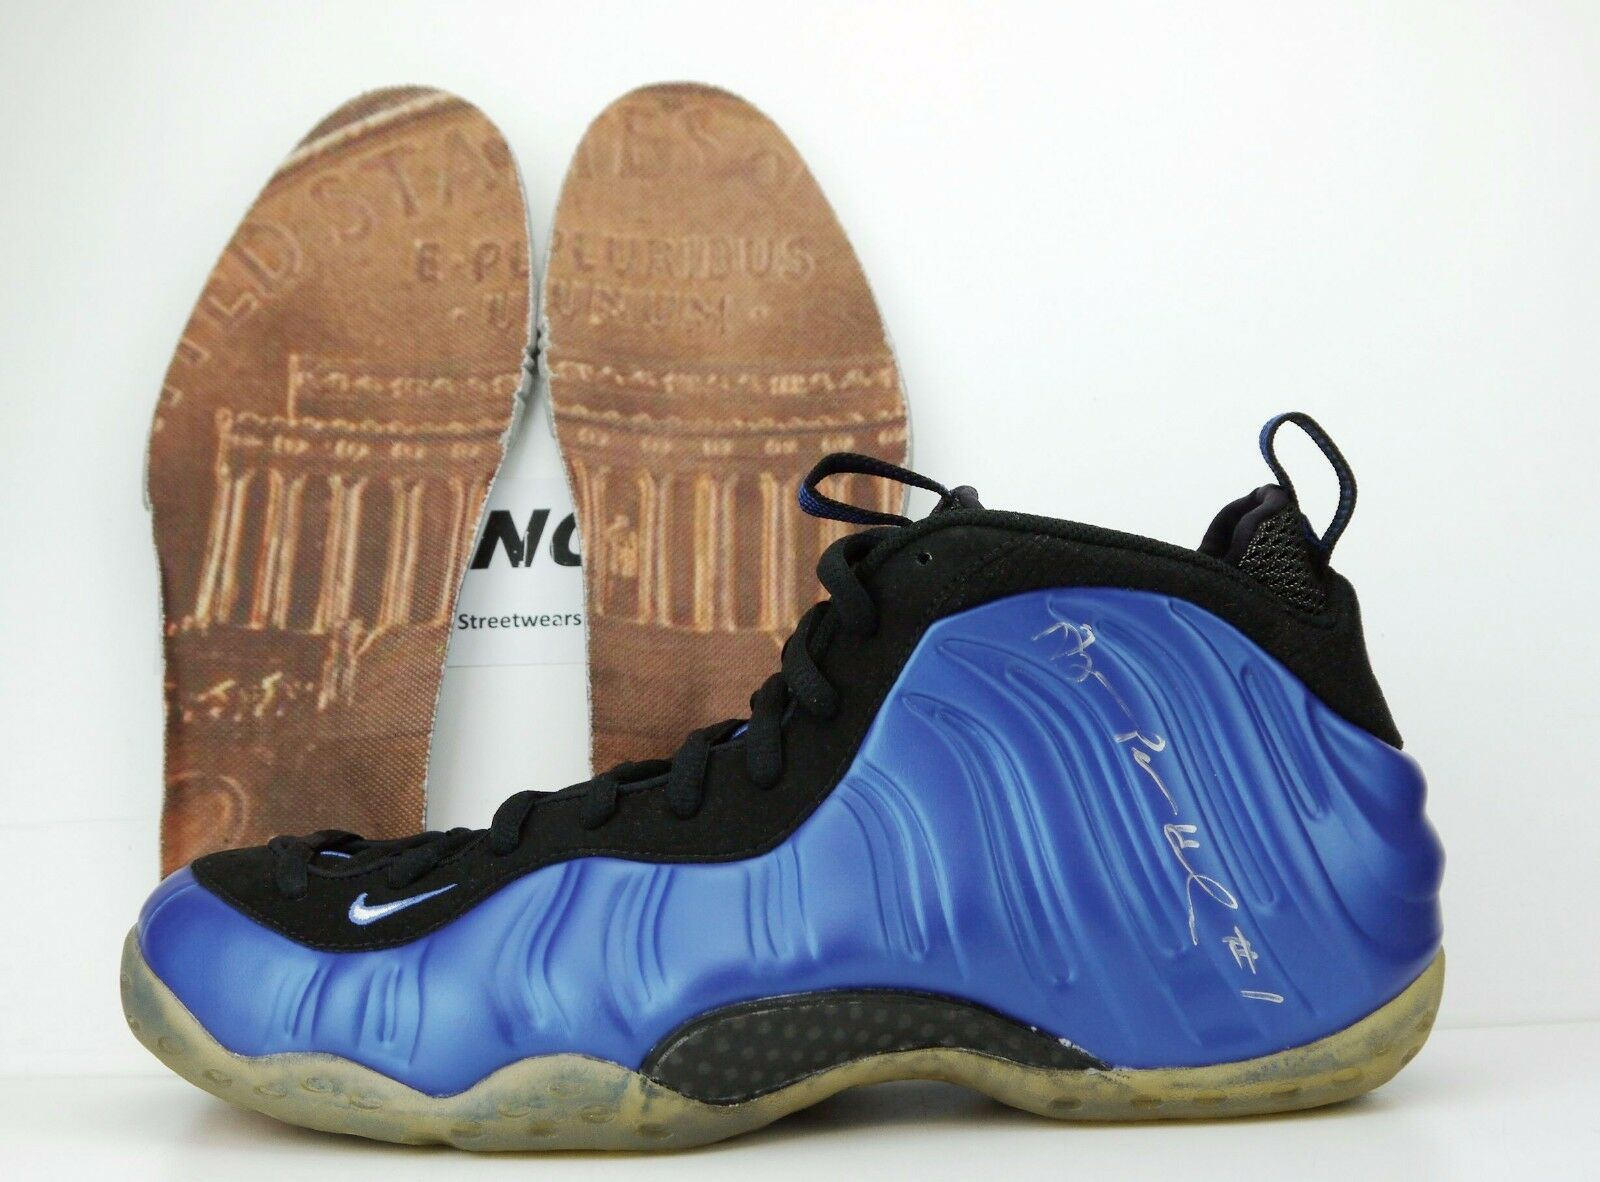 2008 Vintage Nike Air Foamposite One Royal HOH Penny Signed 314996 512 11.5